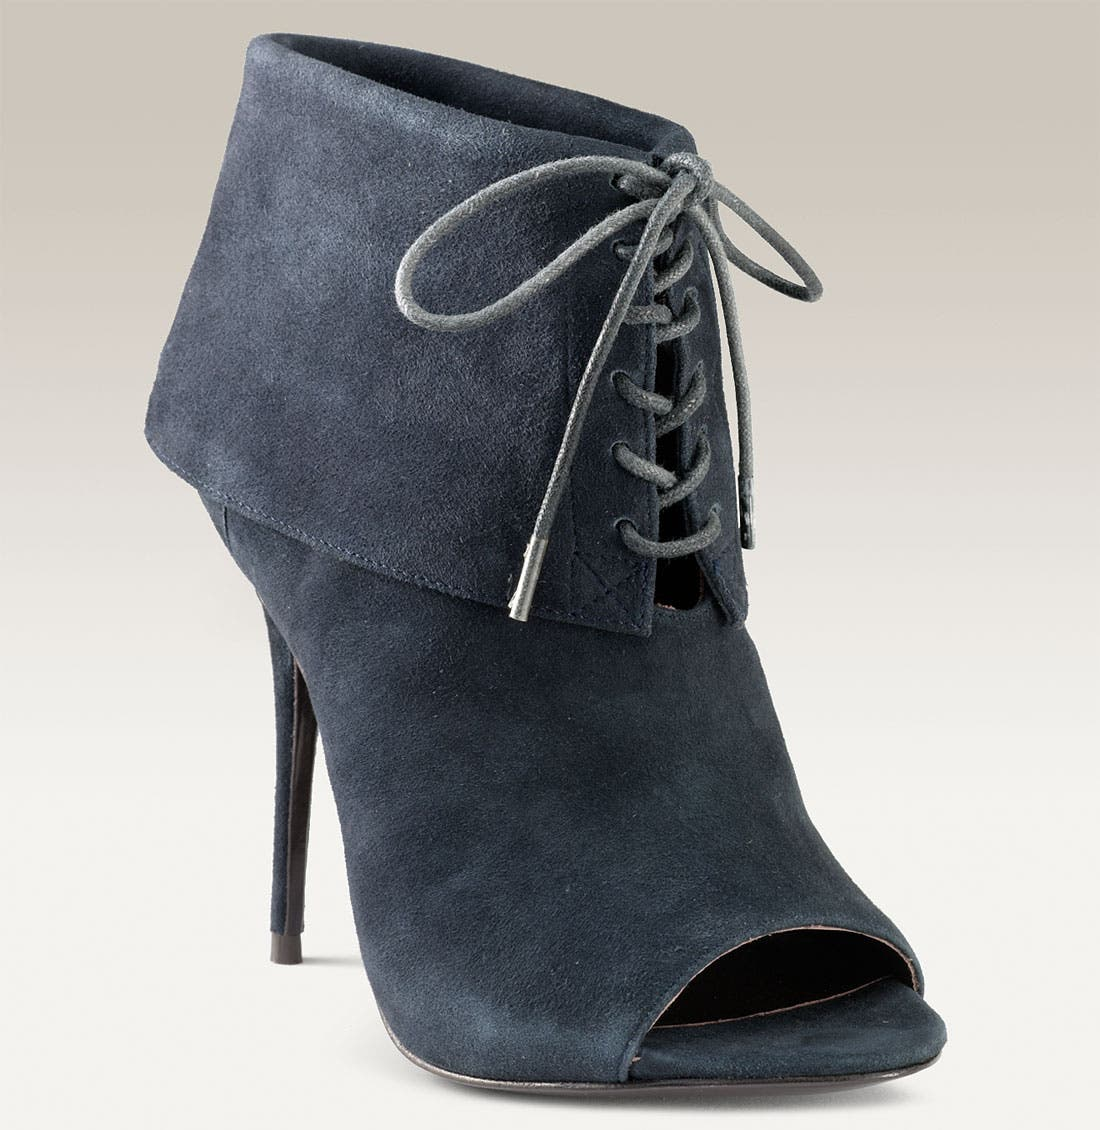 Main Image - Elizabeth and James 'E-Lizzy' Suede Bootie